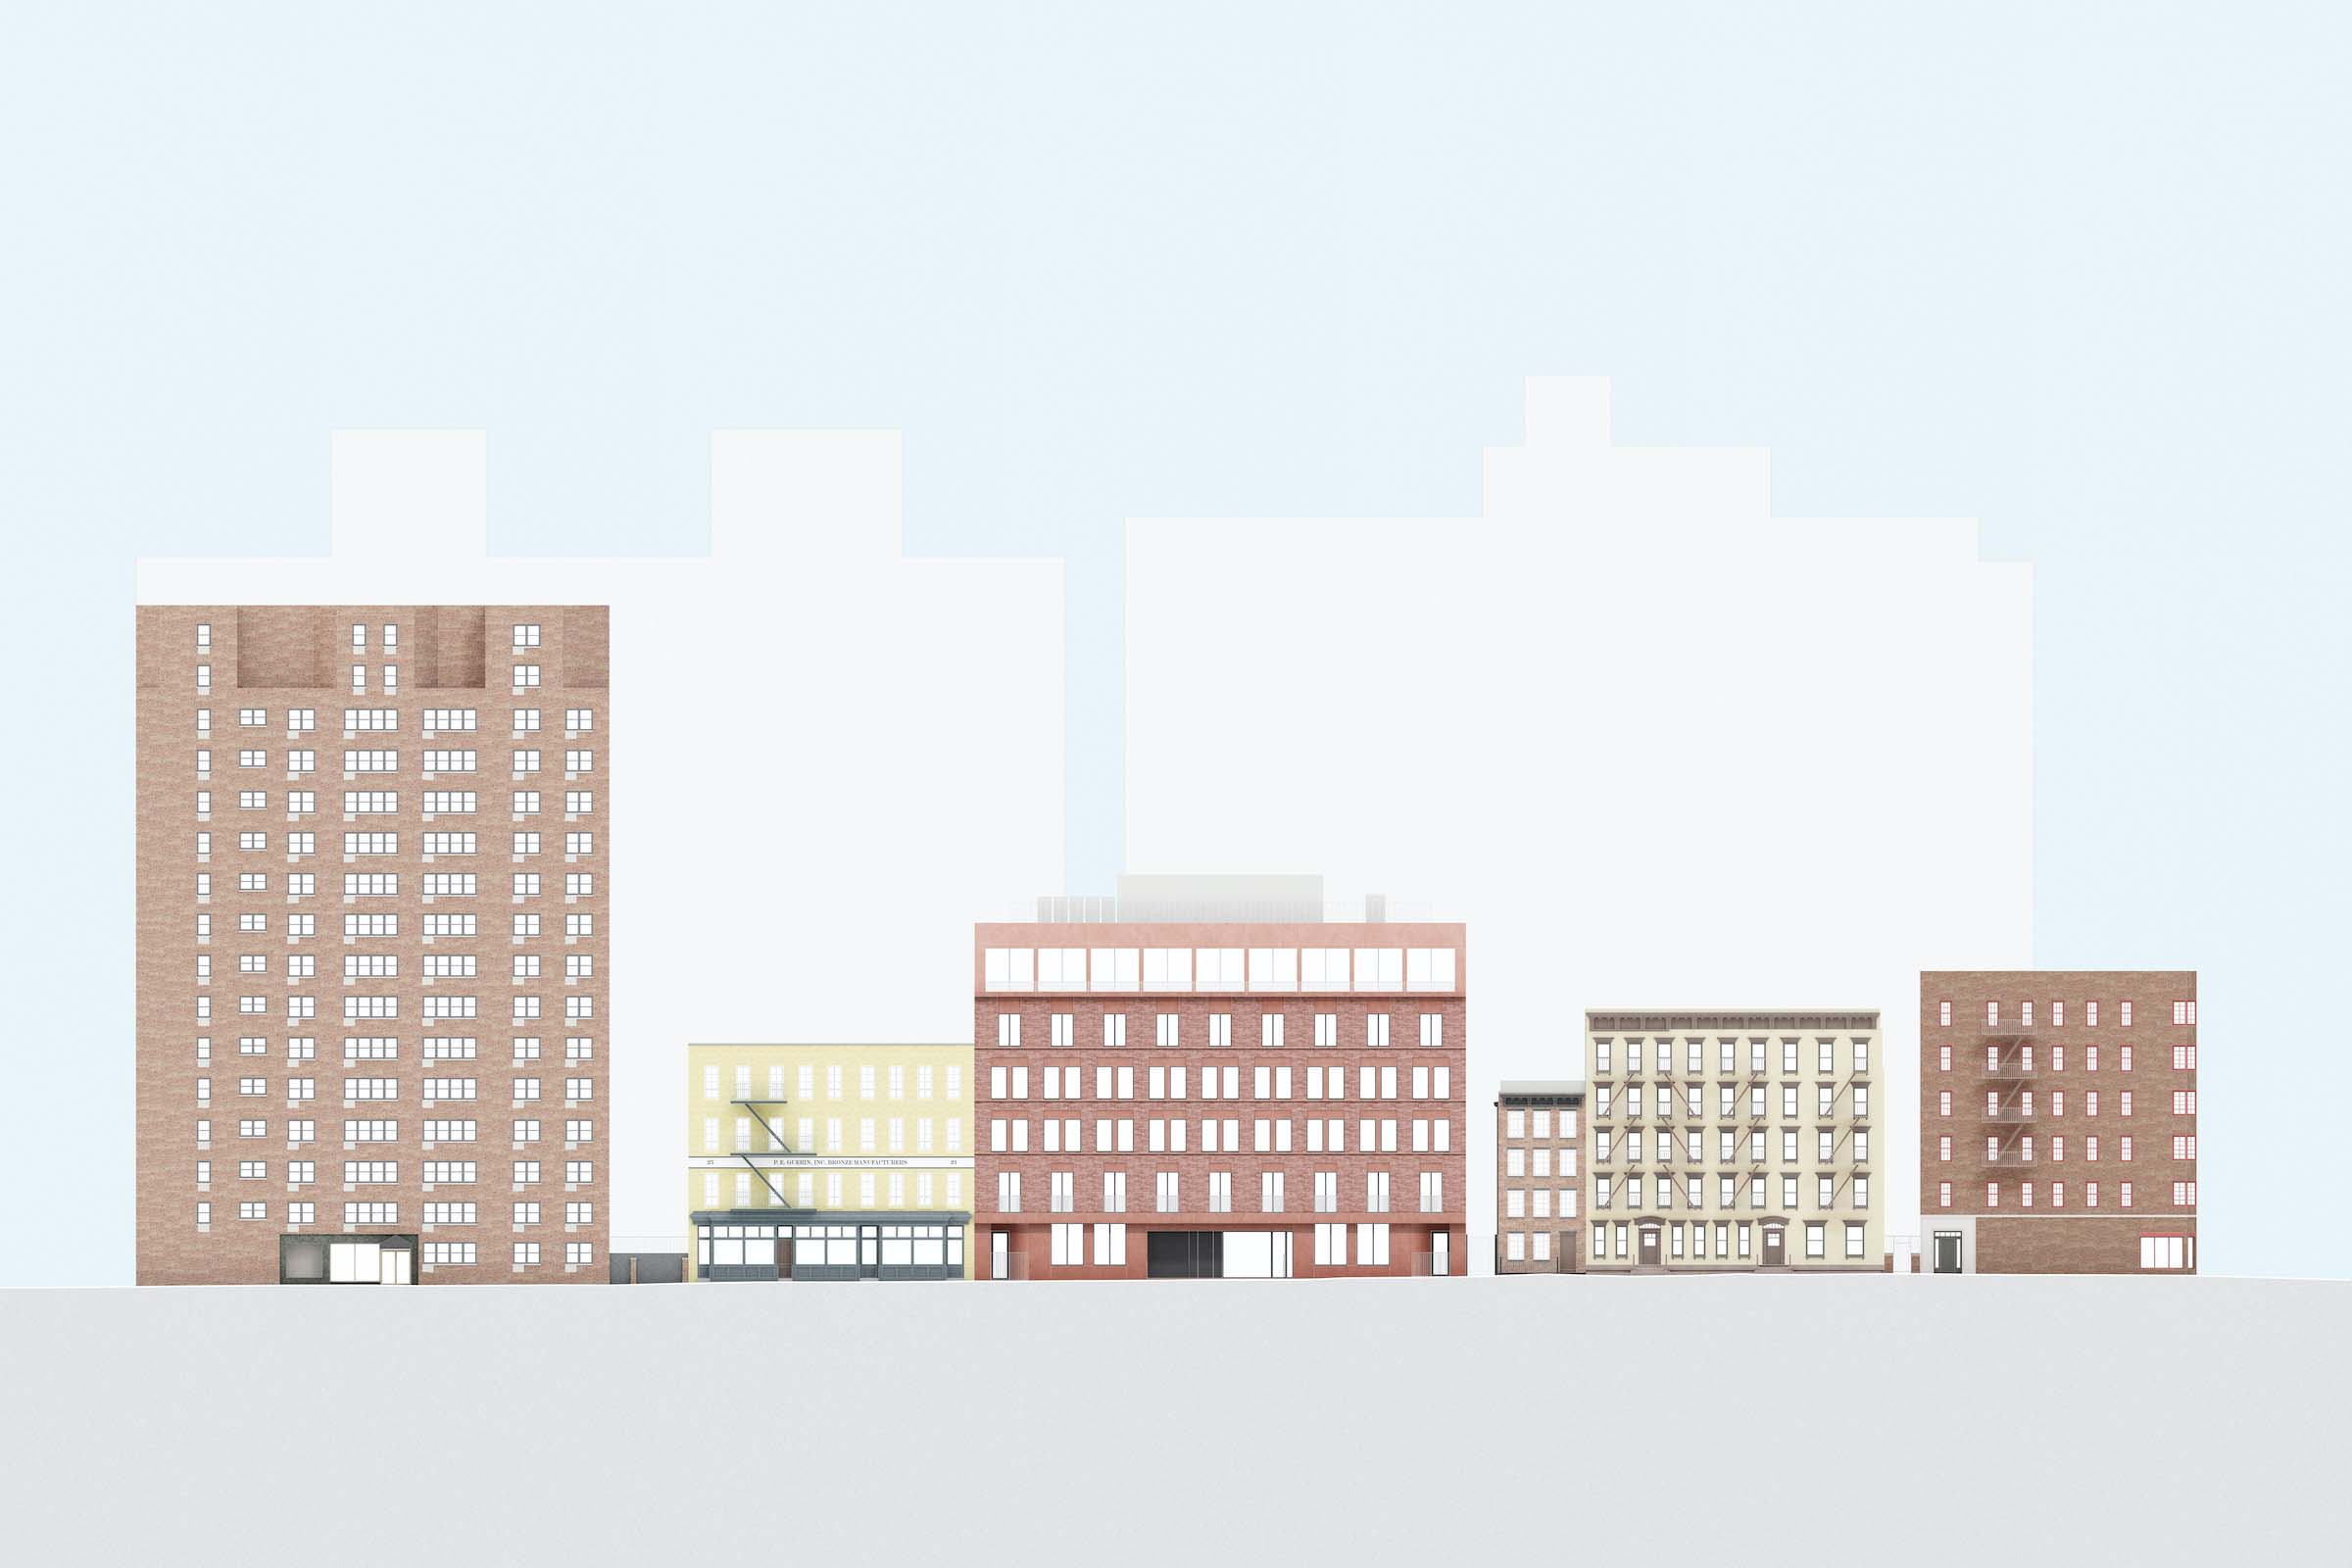 colorful architectural elevation of 11-19 jane street with its surrounding context